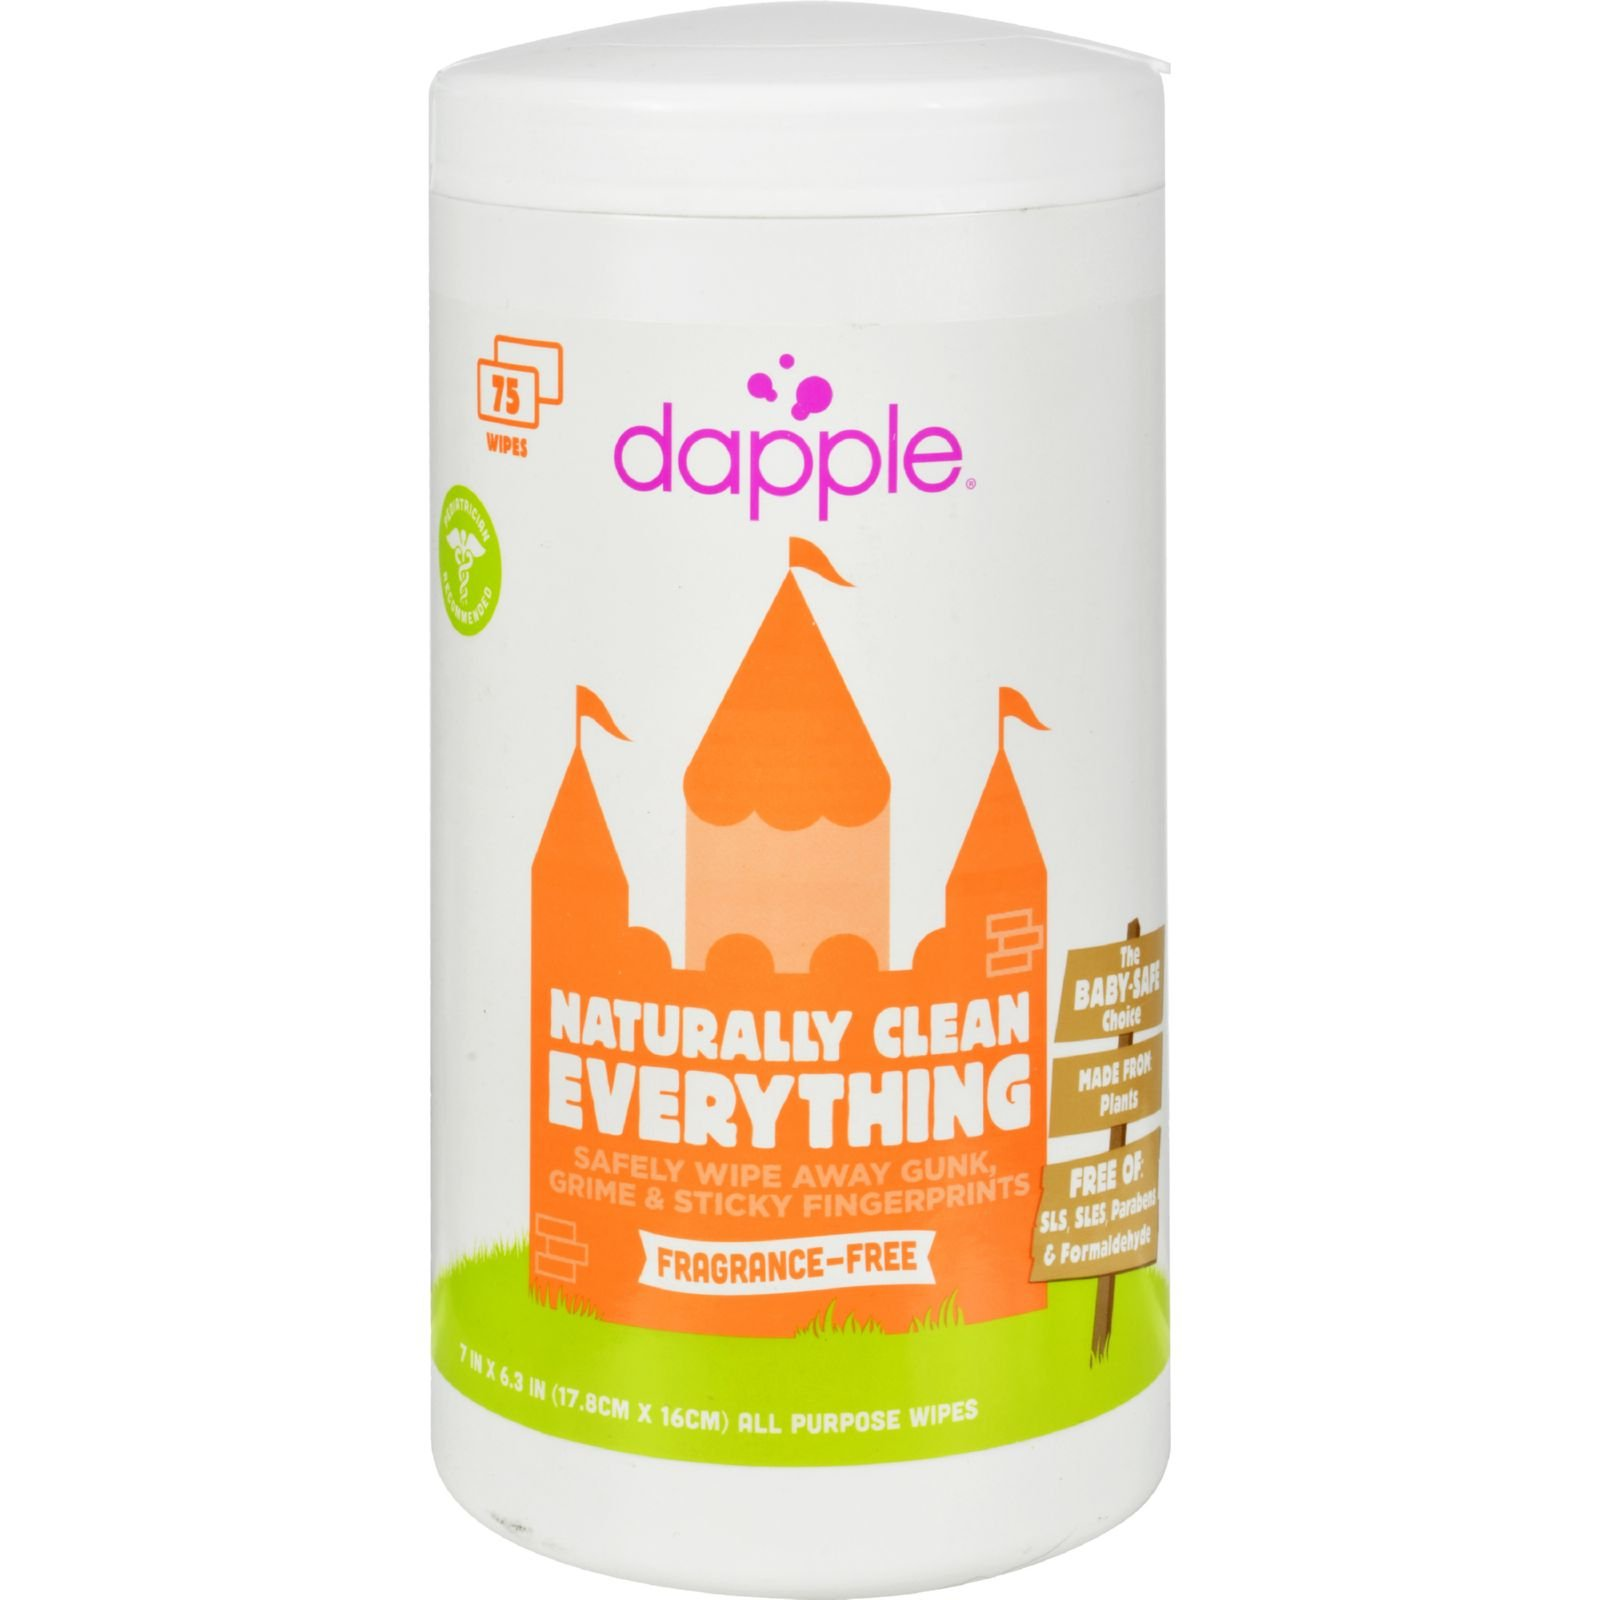 Dapple Surface Wipes for Highchairs, Toys and More Fragrance Free - All Purpose - 75 Wet Wipes (Pack of 4)